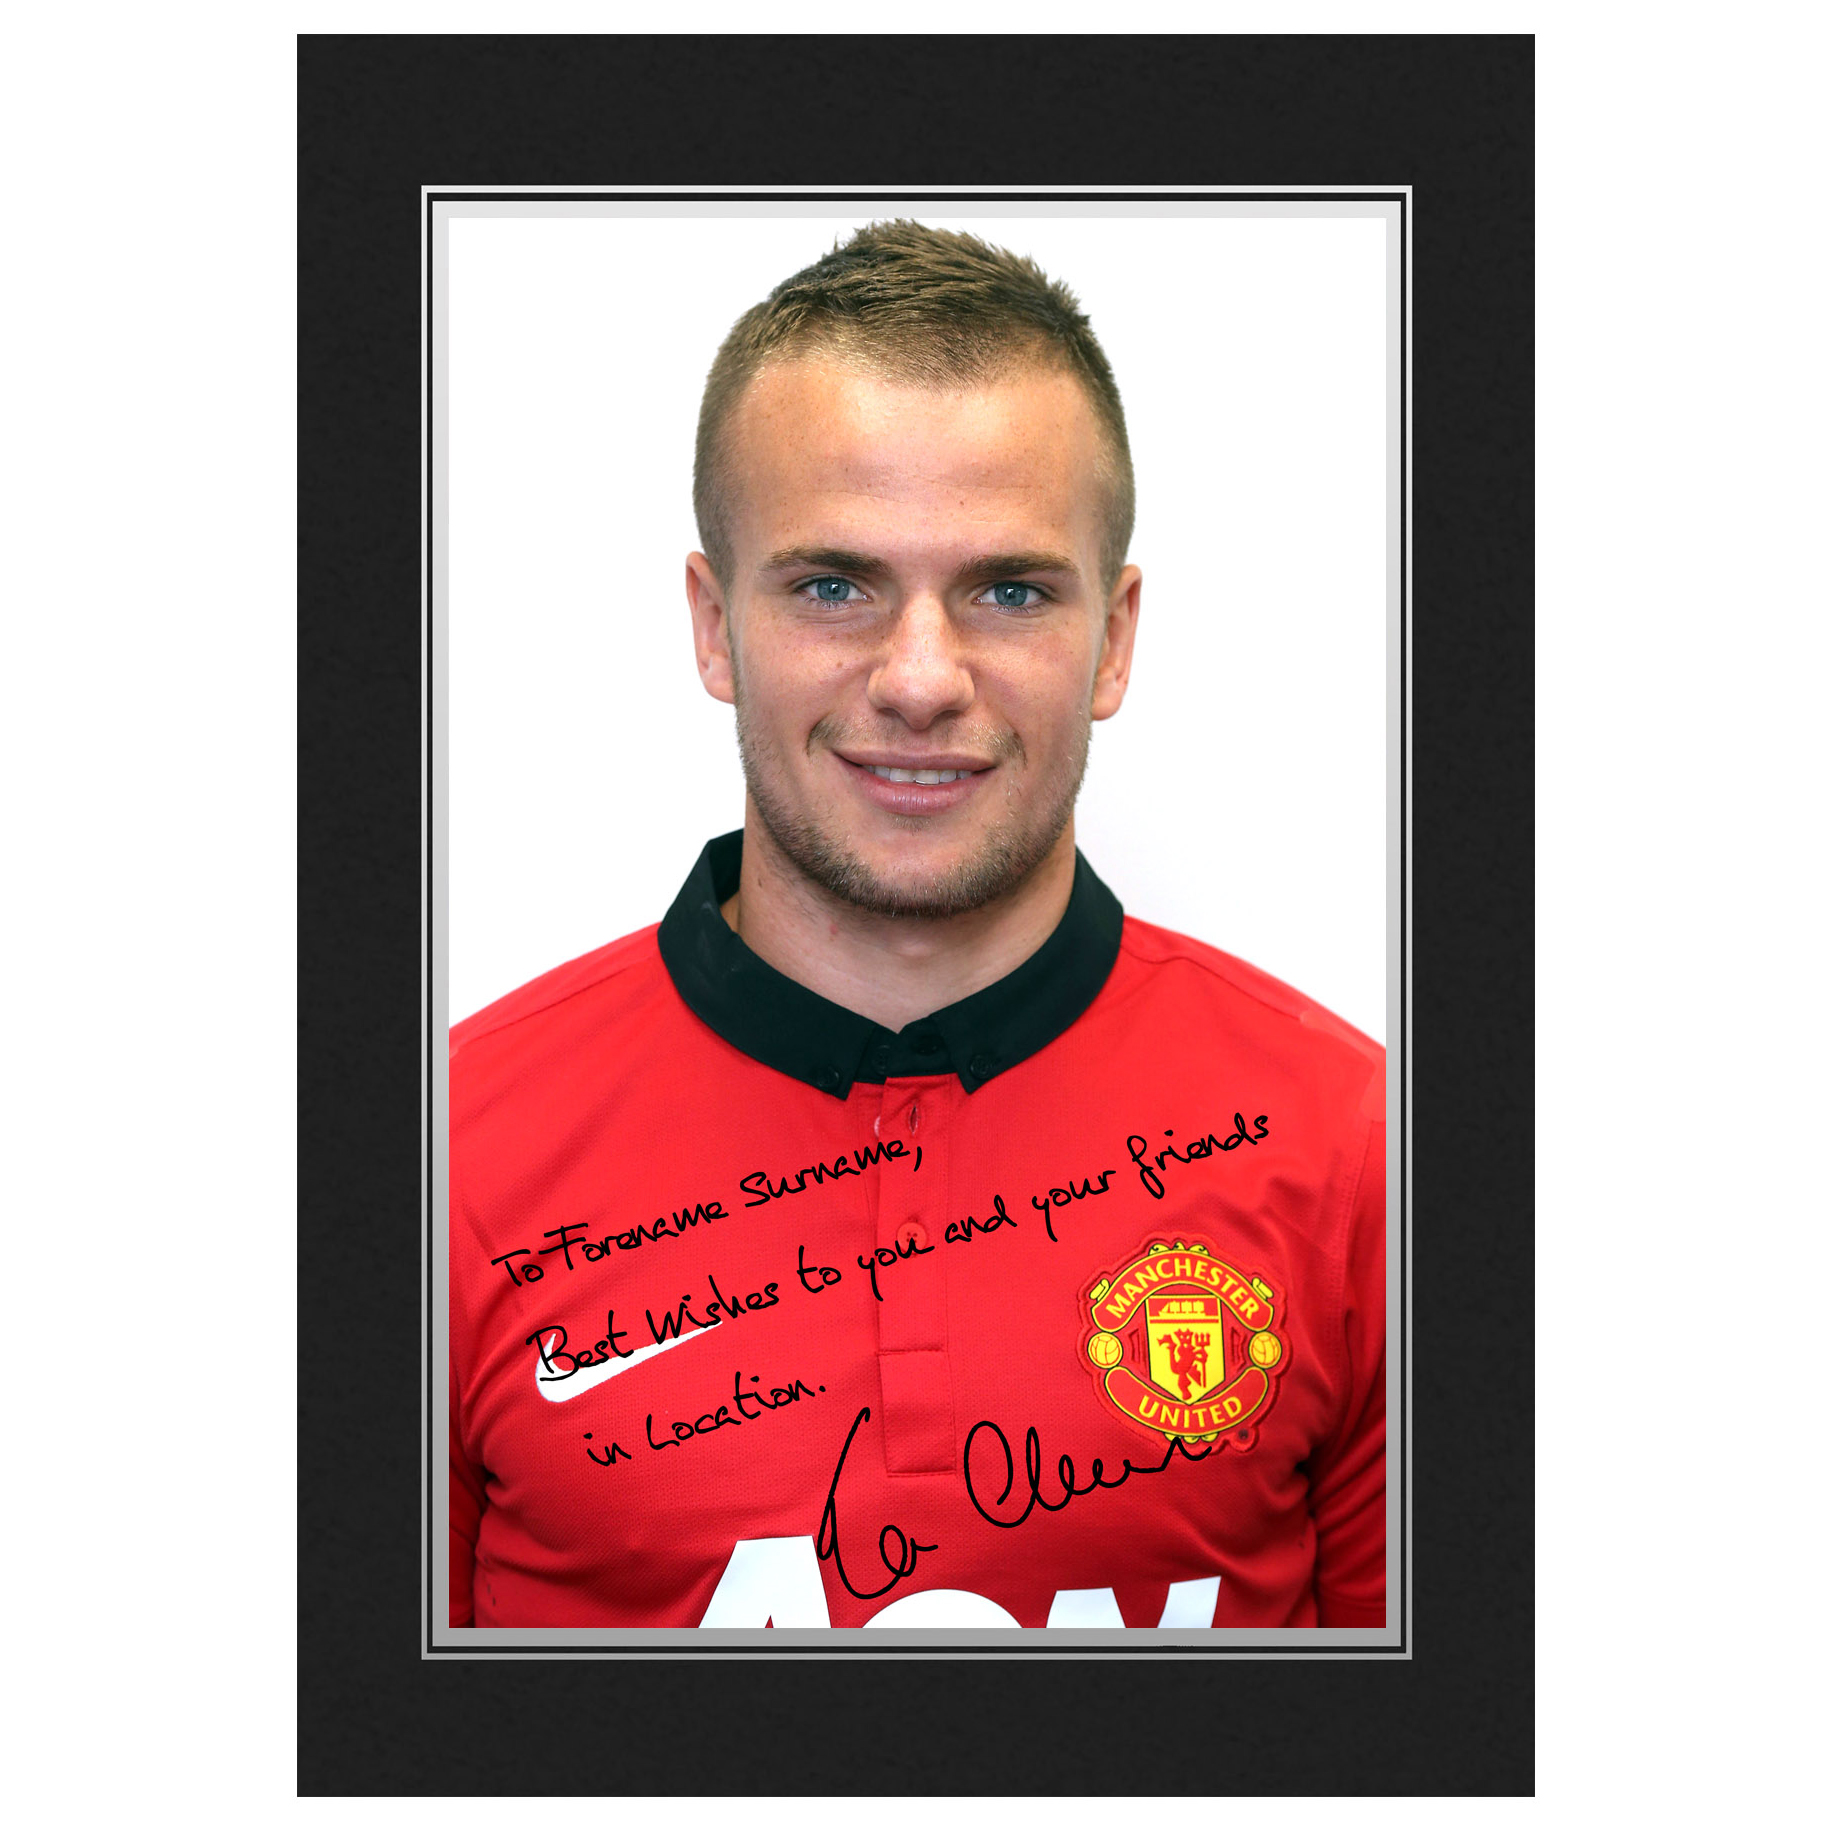 Manchester United Personalised Signature Photo In Presentation Folder - Cleverley